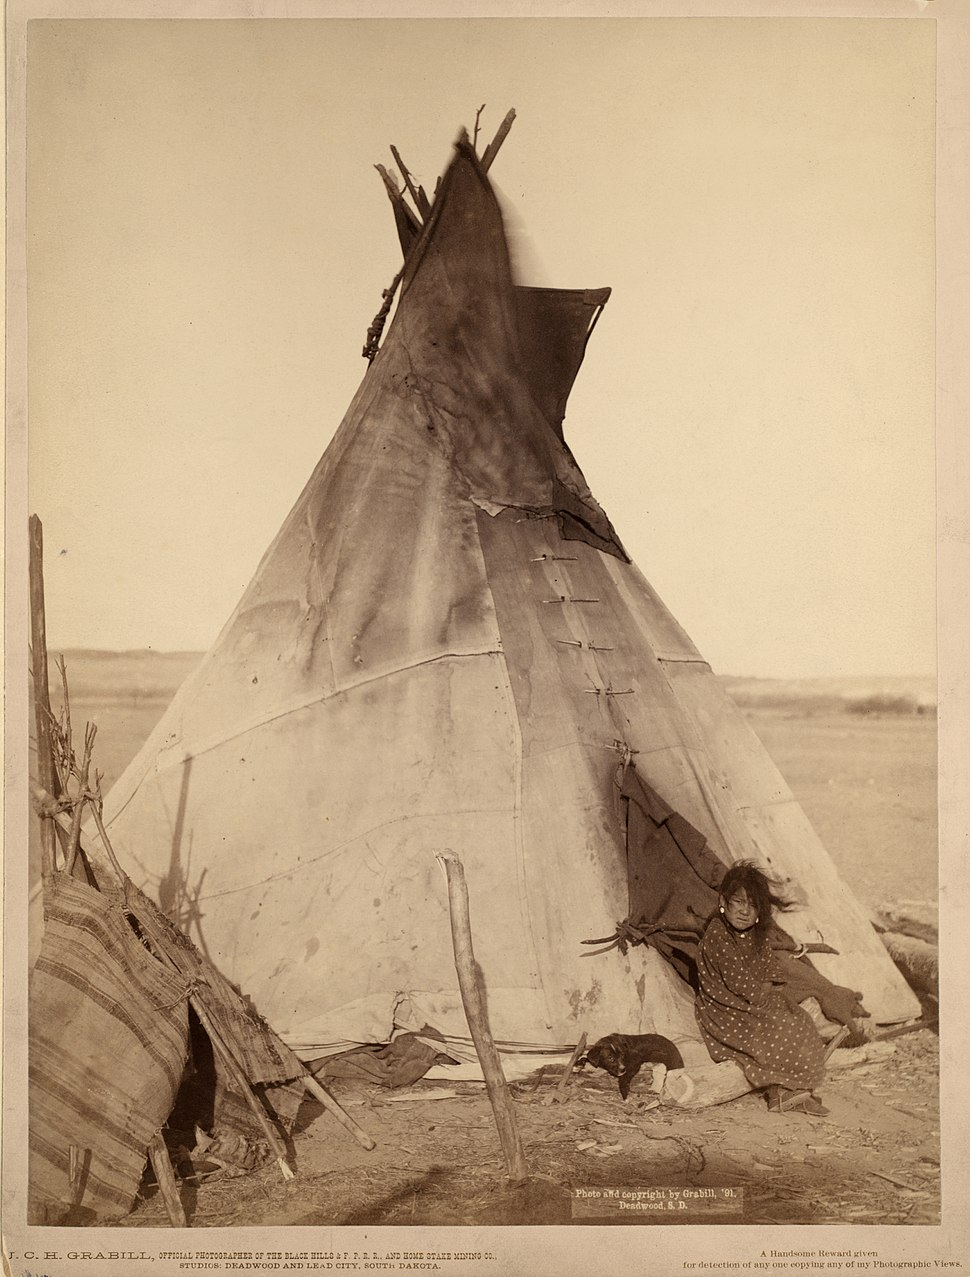 Oglala girl in front of a tipi